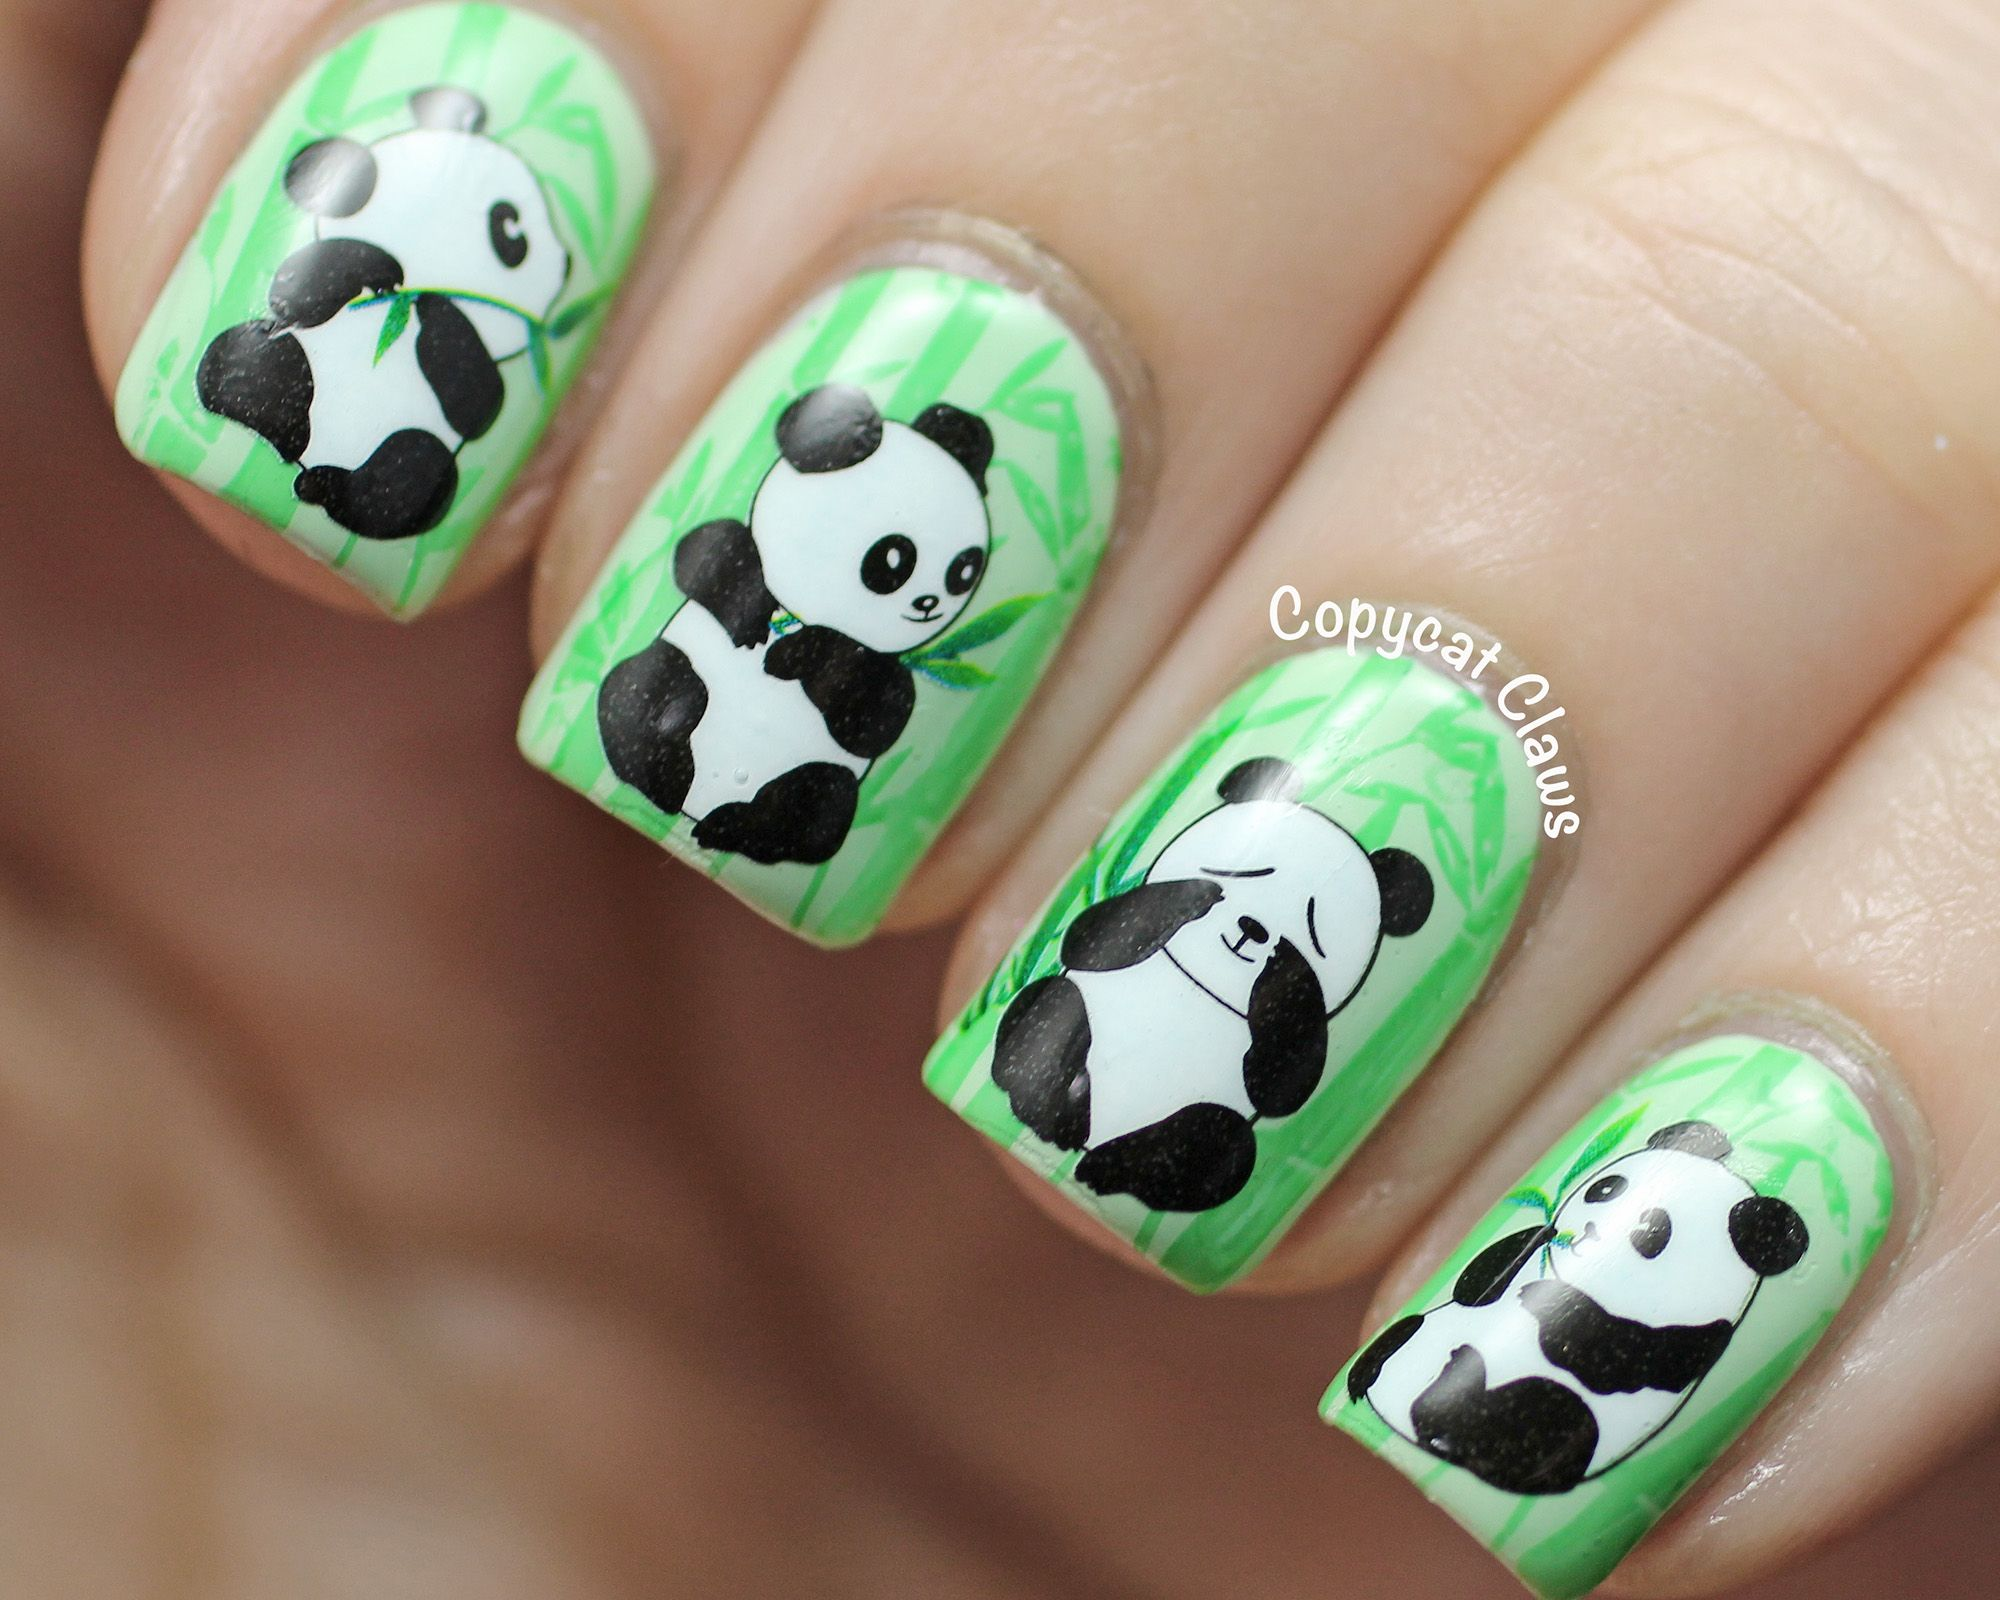 Panda nails stylez for hair make up nailz pinterest image via panda nail art designs image via how to create cute panda nail art image via panda nails image via nail art water decals transfers sticker lovely prinsesfo Images